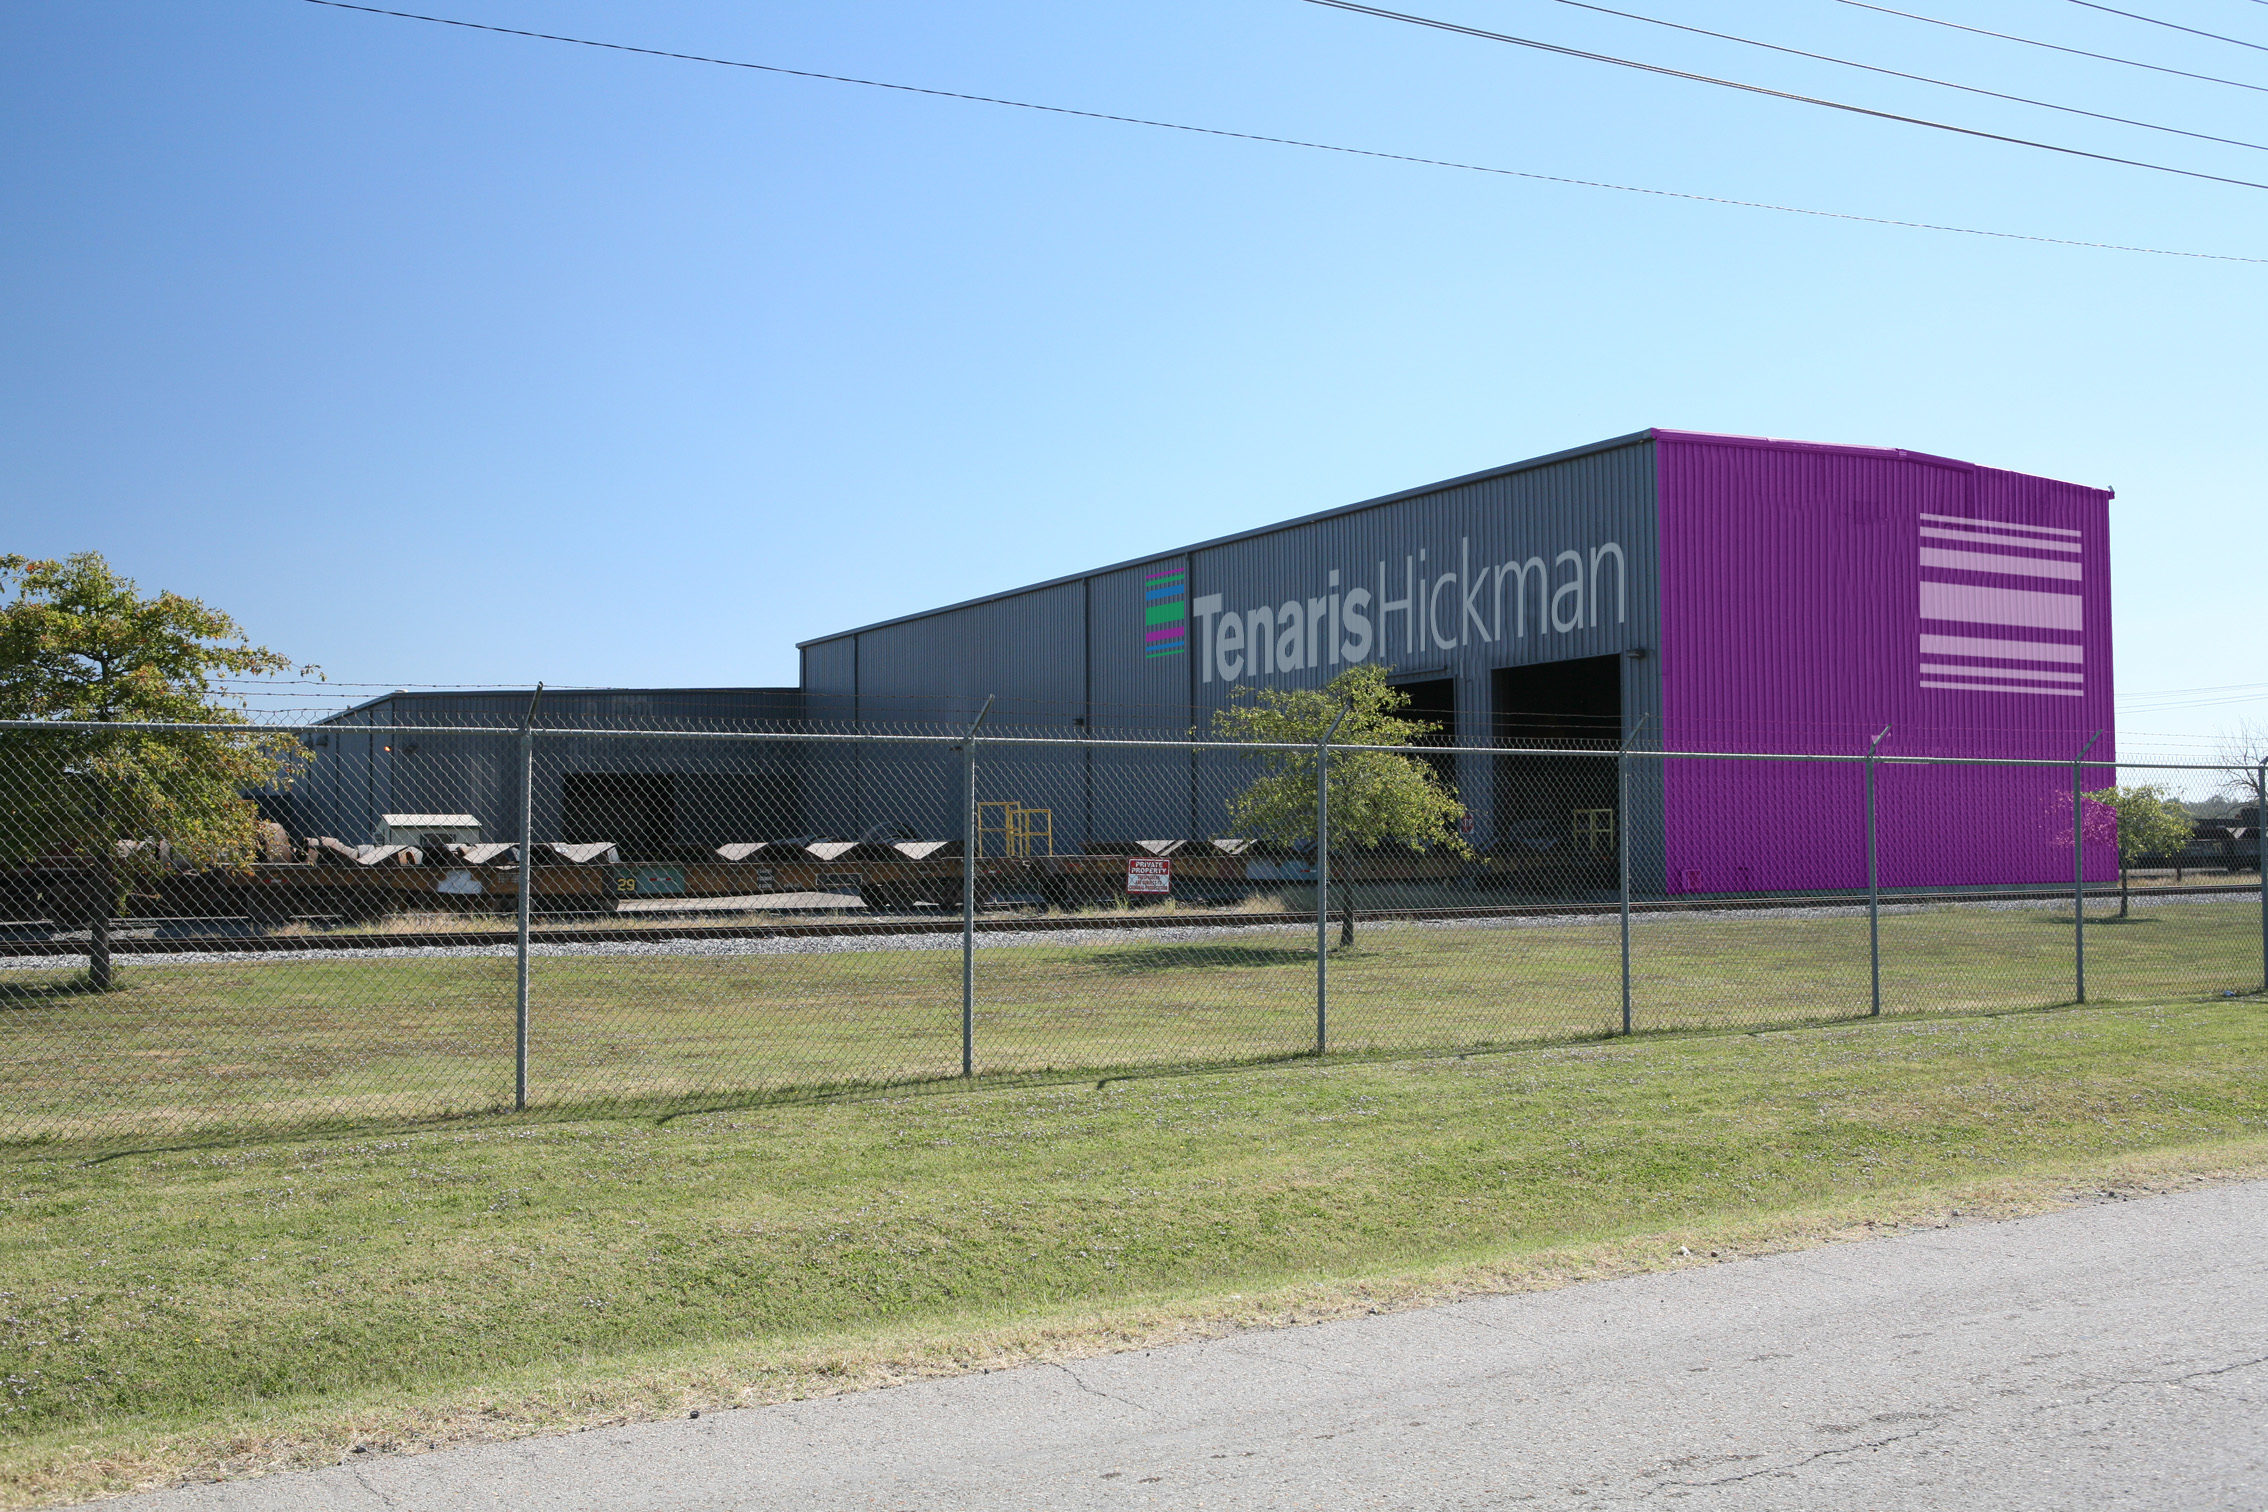 Tenaris Hickman Industrial Plant in Blytheville, USA. Signing